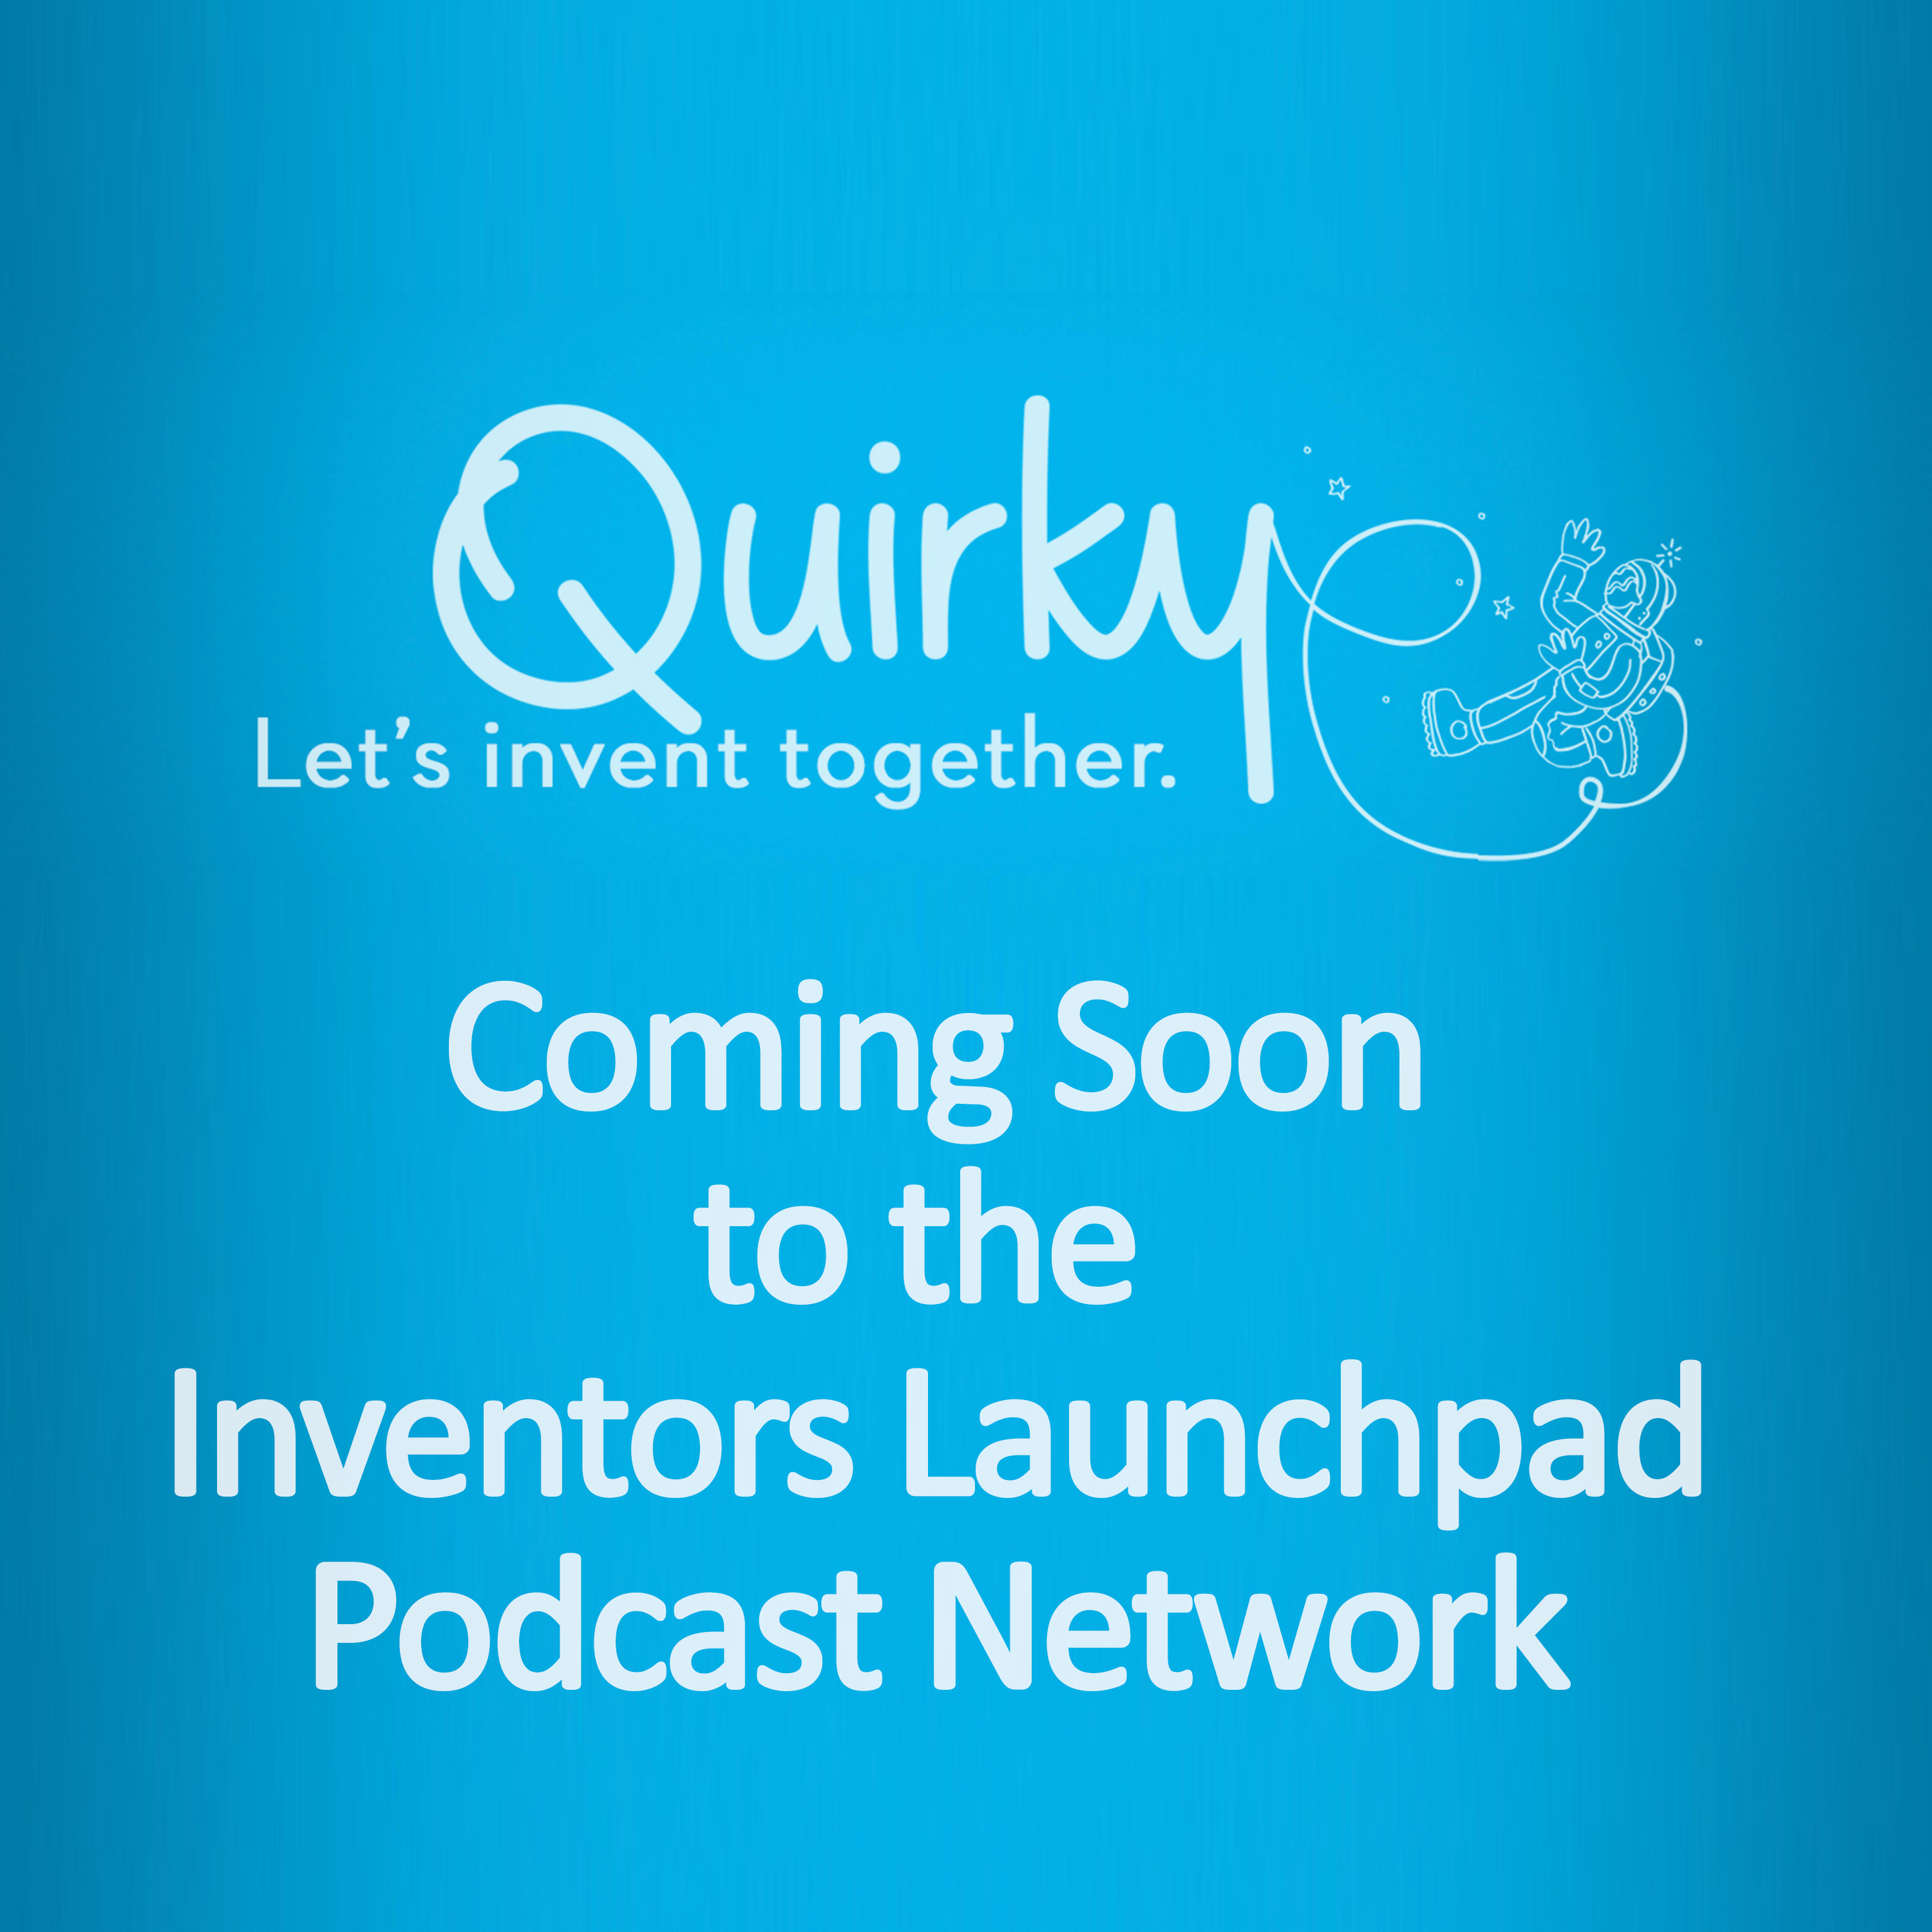 quirky-banner